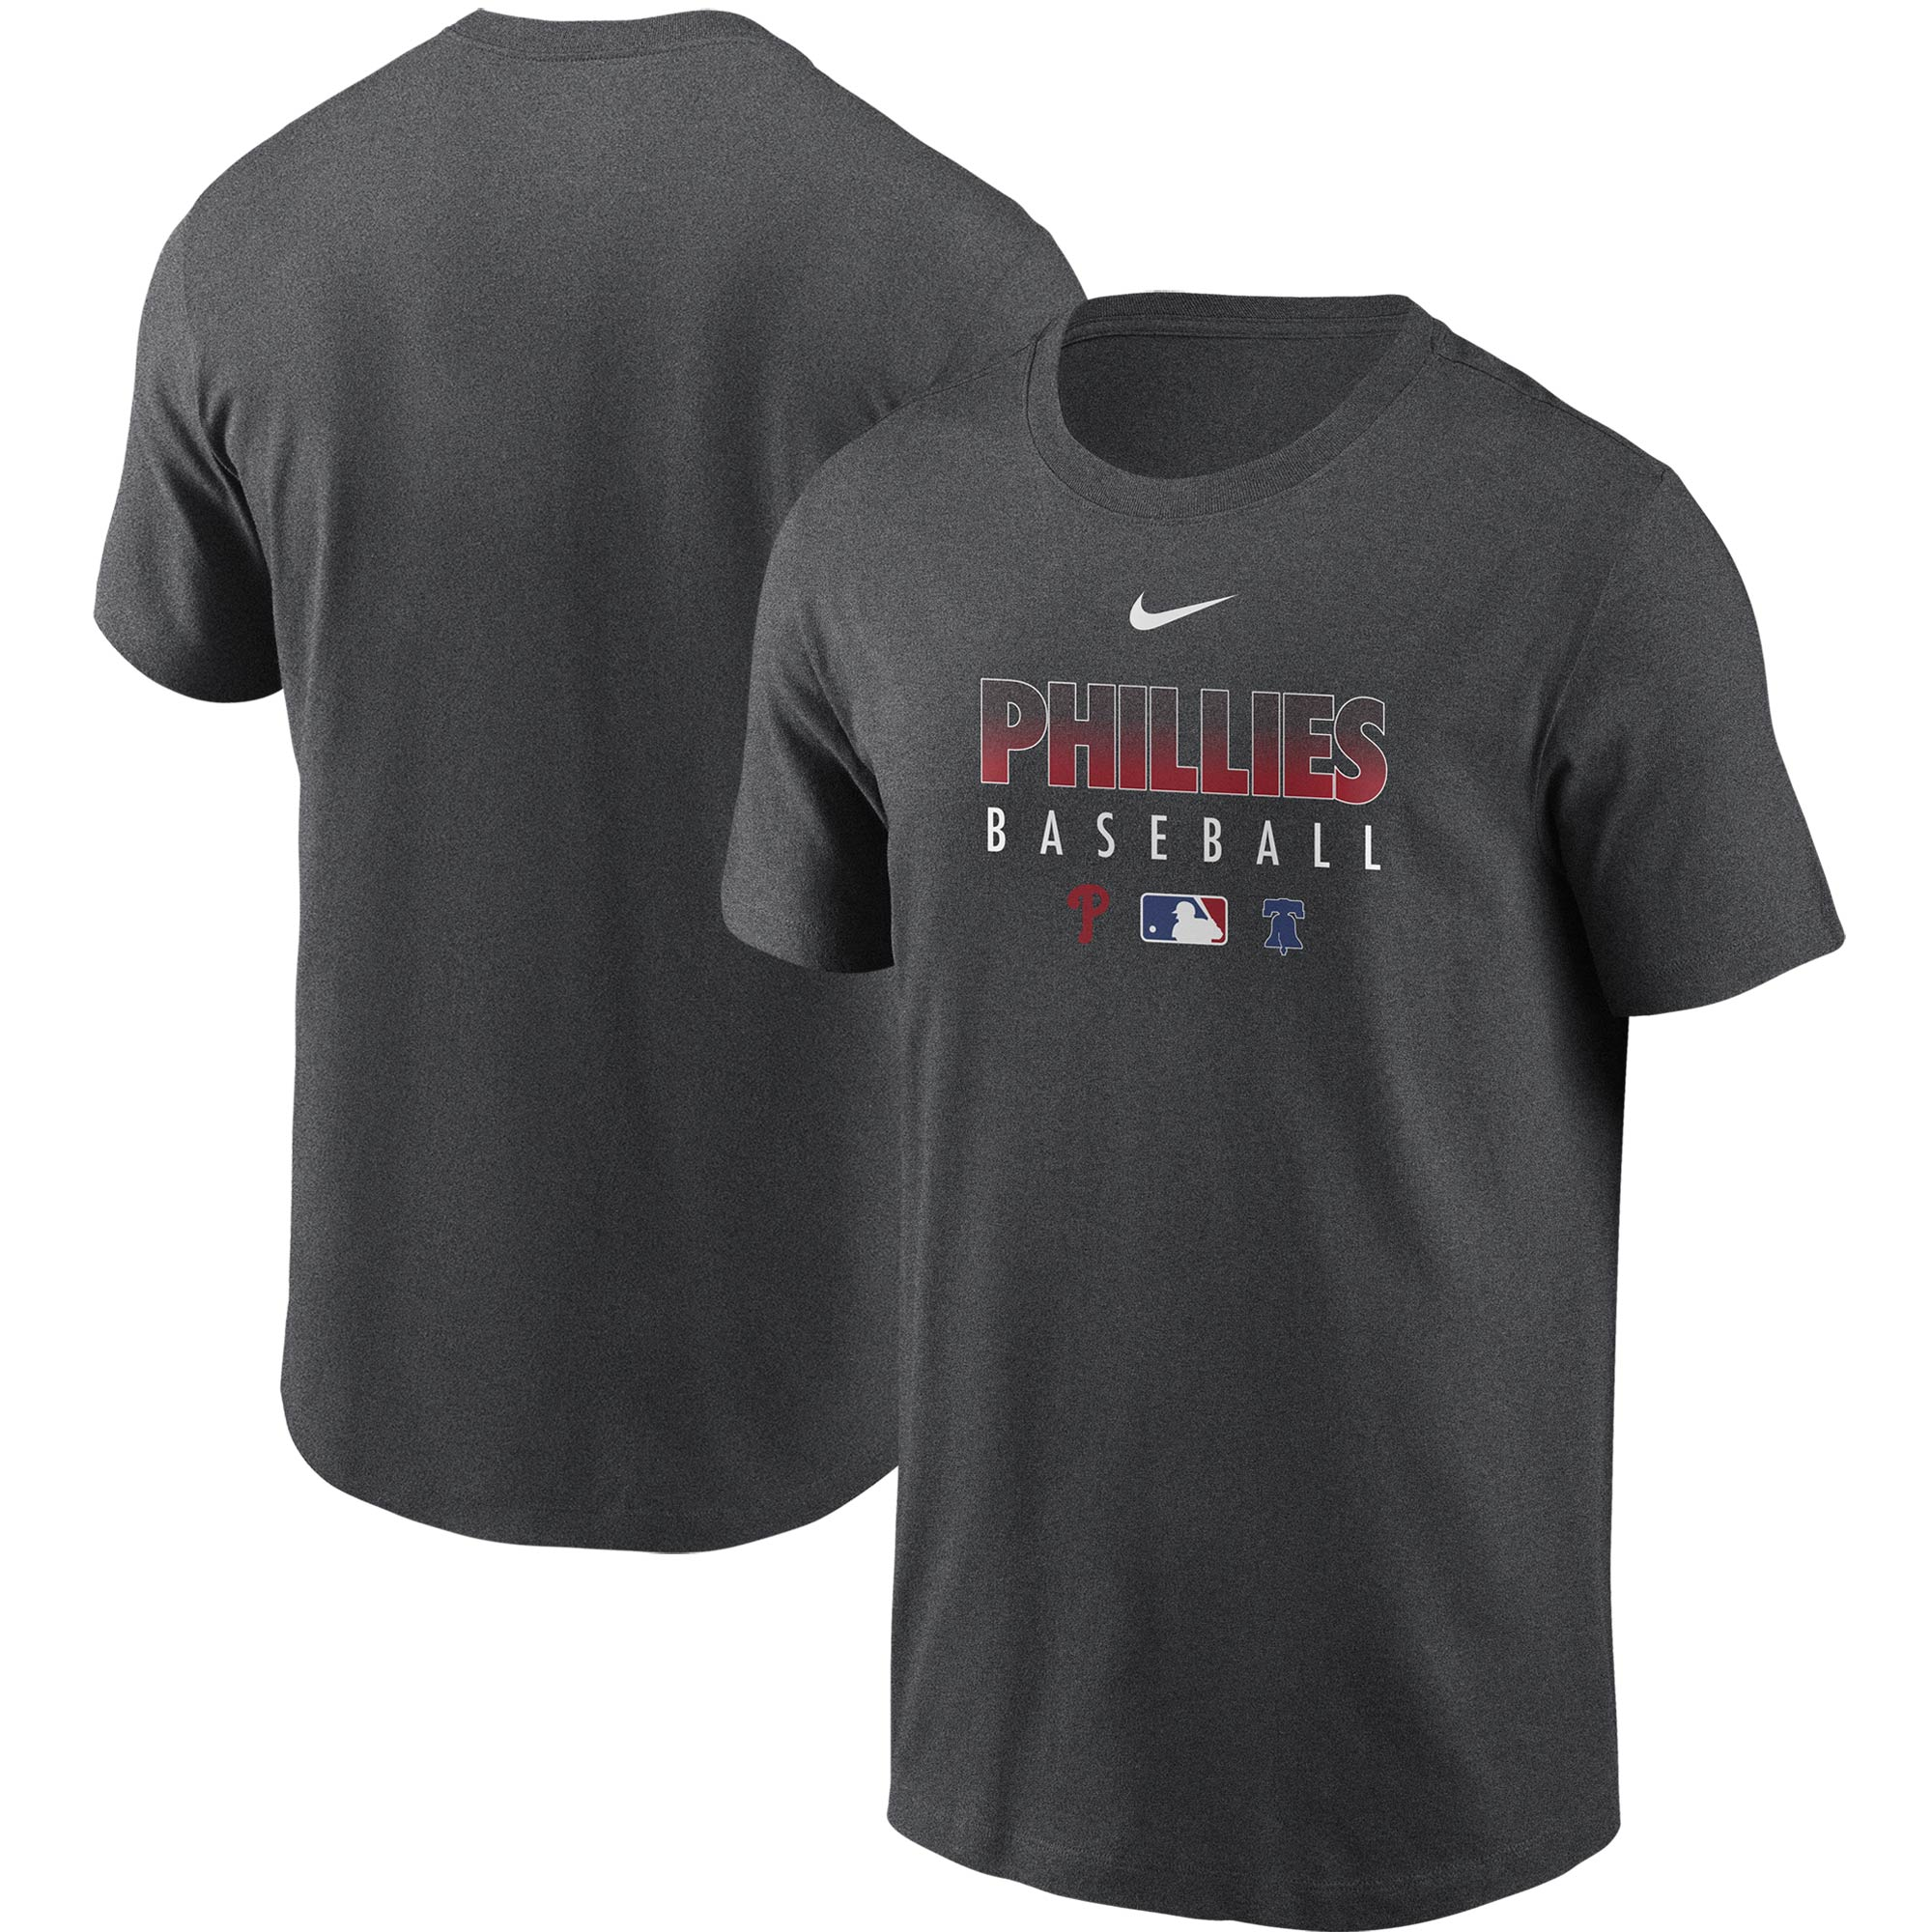 Philadelphia Phillies Nike Authentic Collection Team Performance T-Shirt - Gray